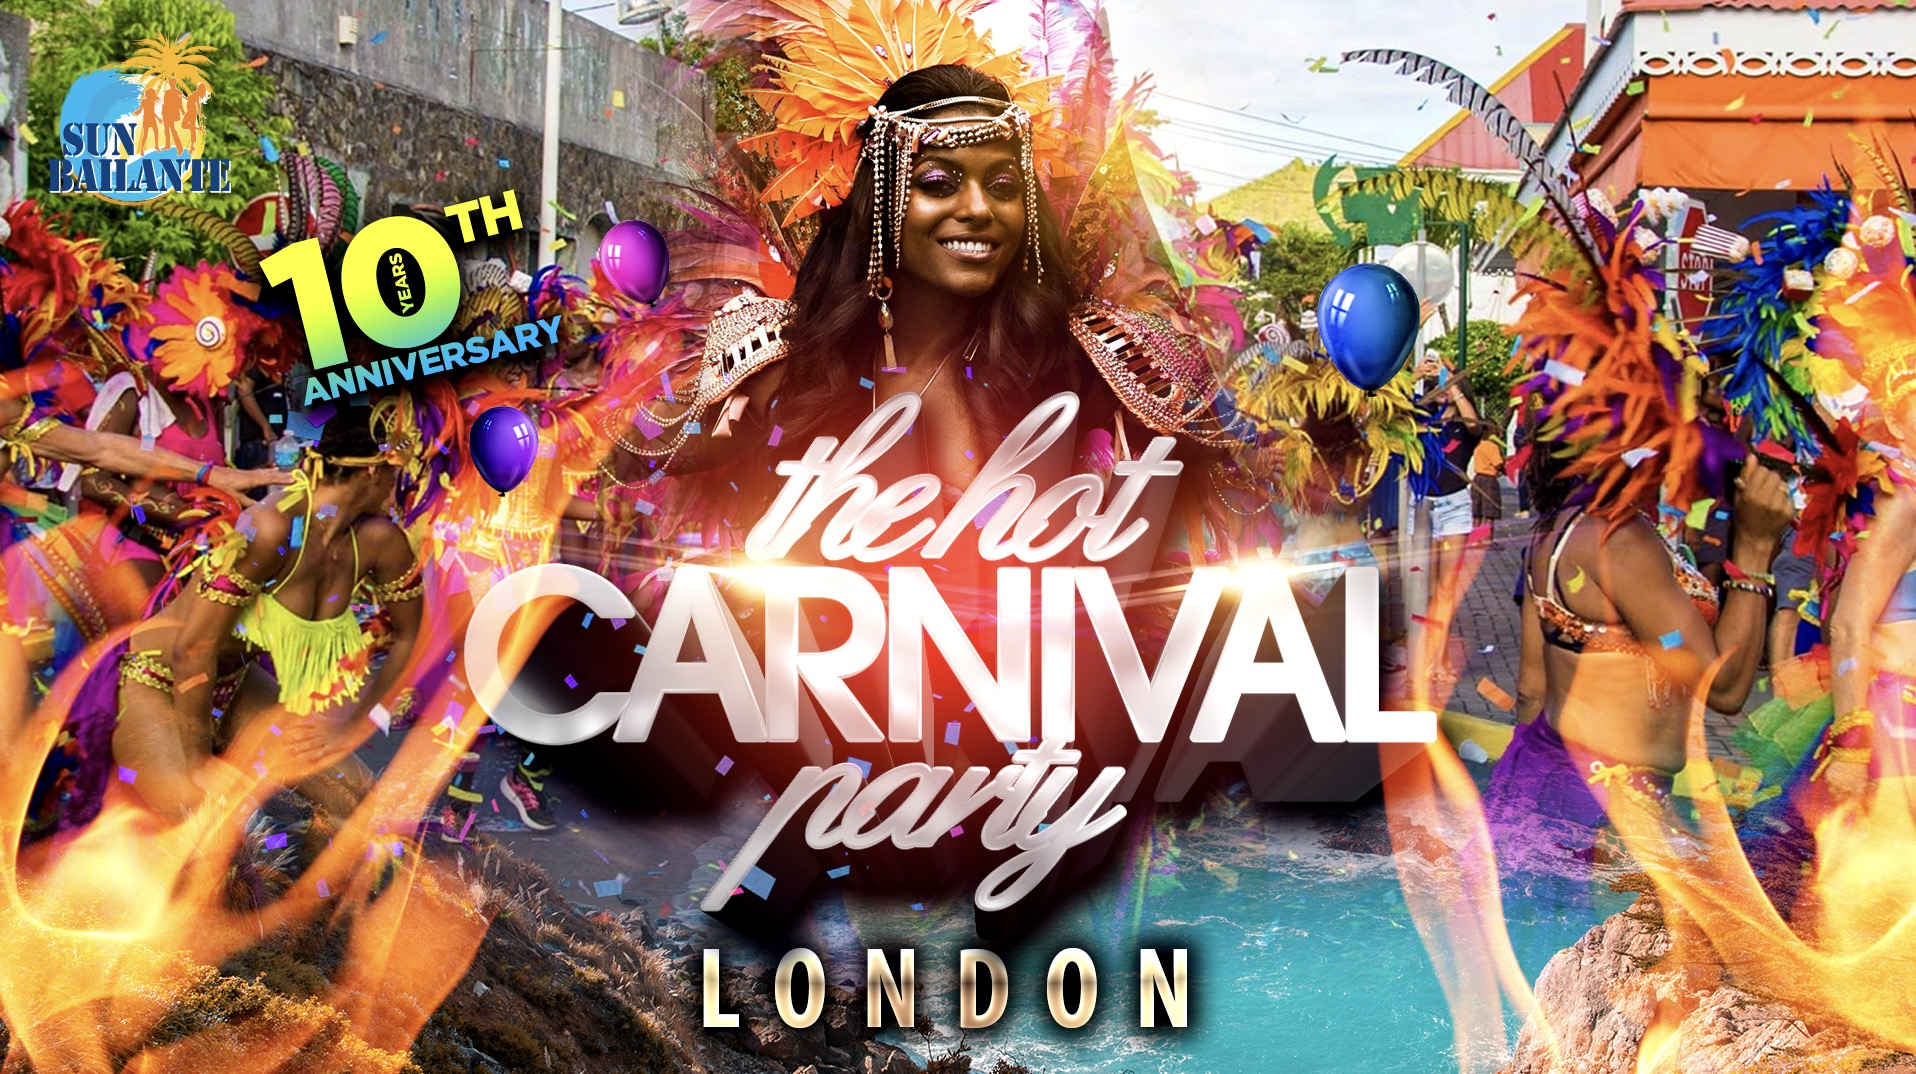 The Hot Carnival Party - Notting Hill Carnival party 2020